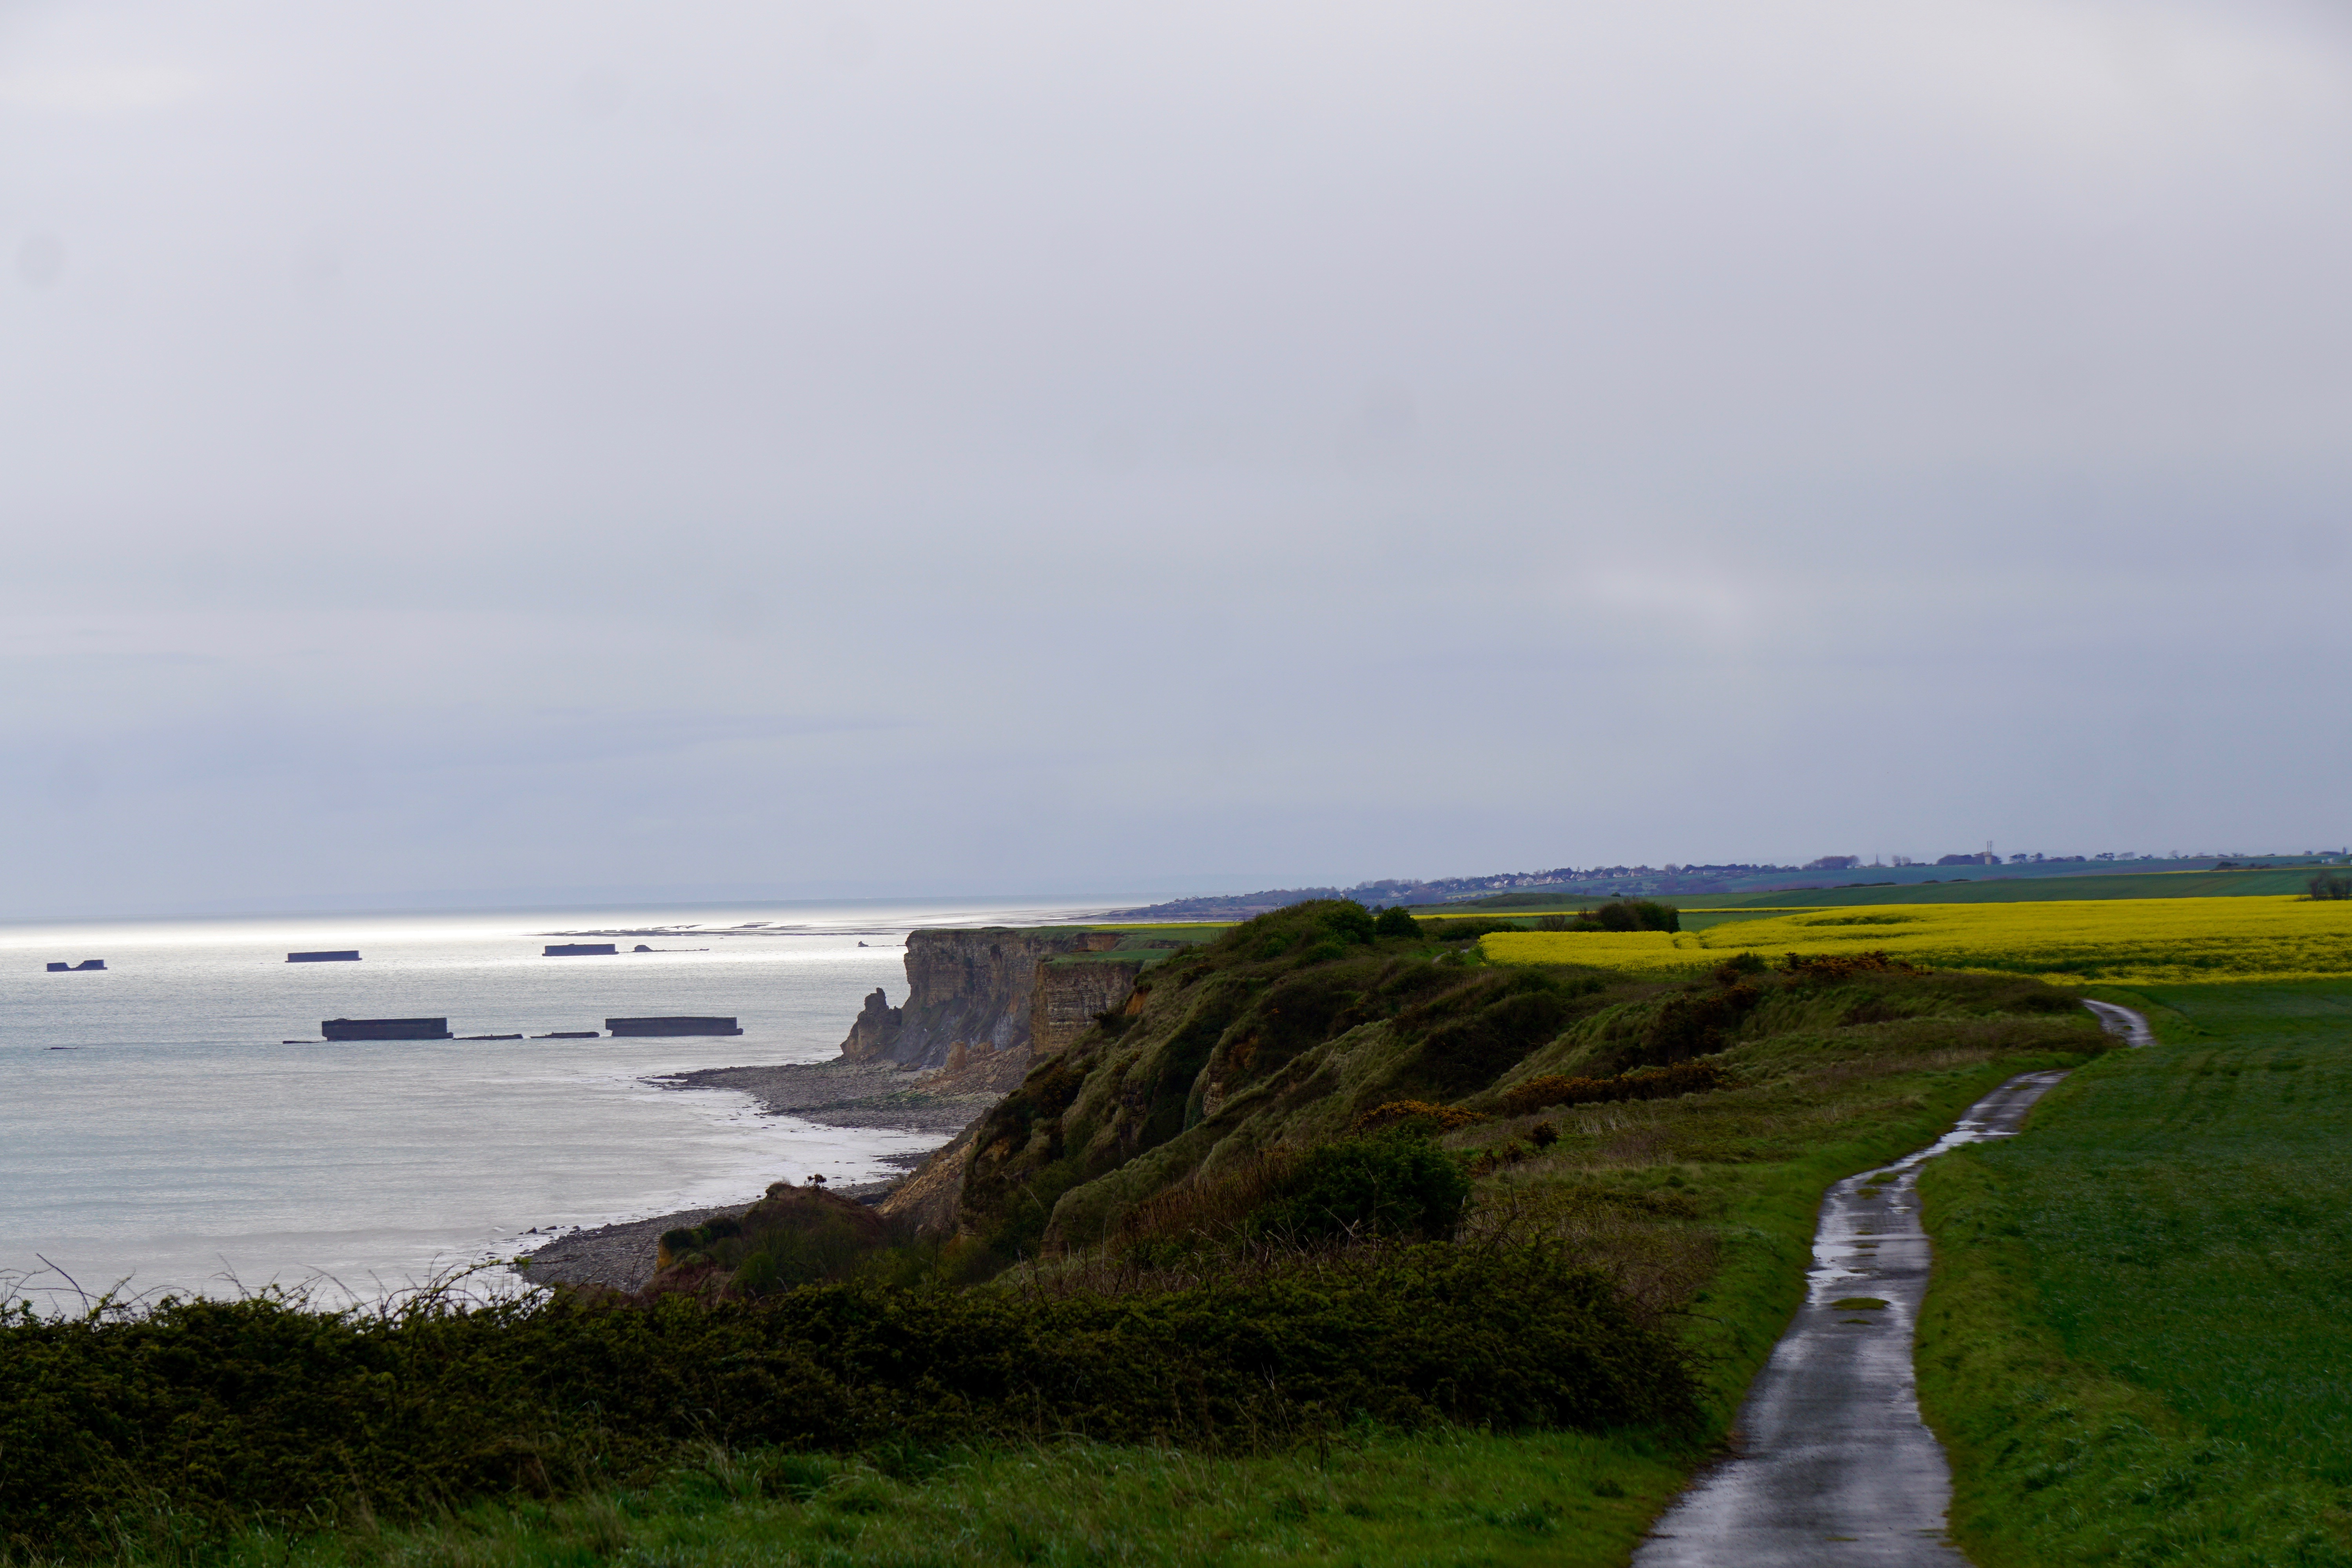 Normandy, remnants of the war remain in the ocean